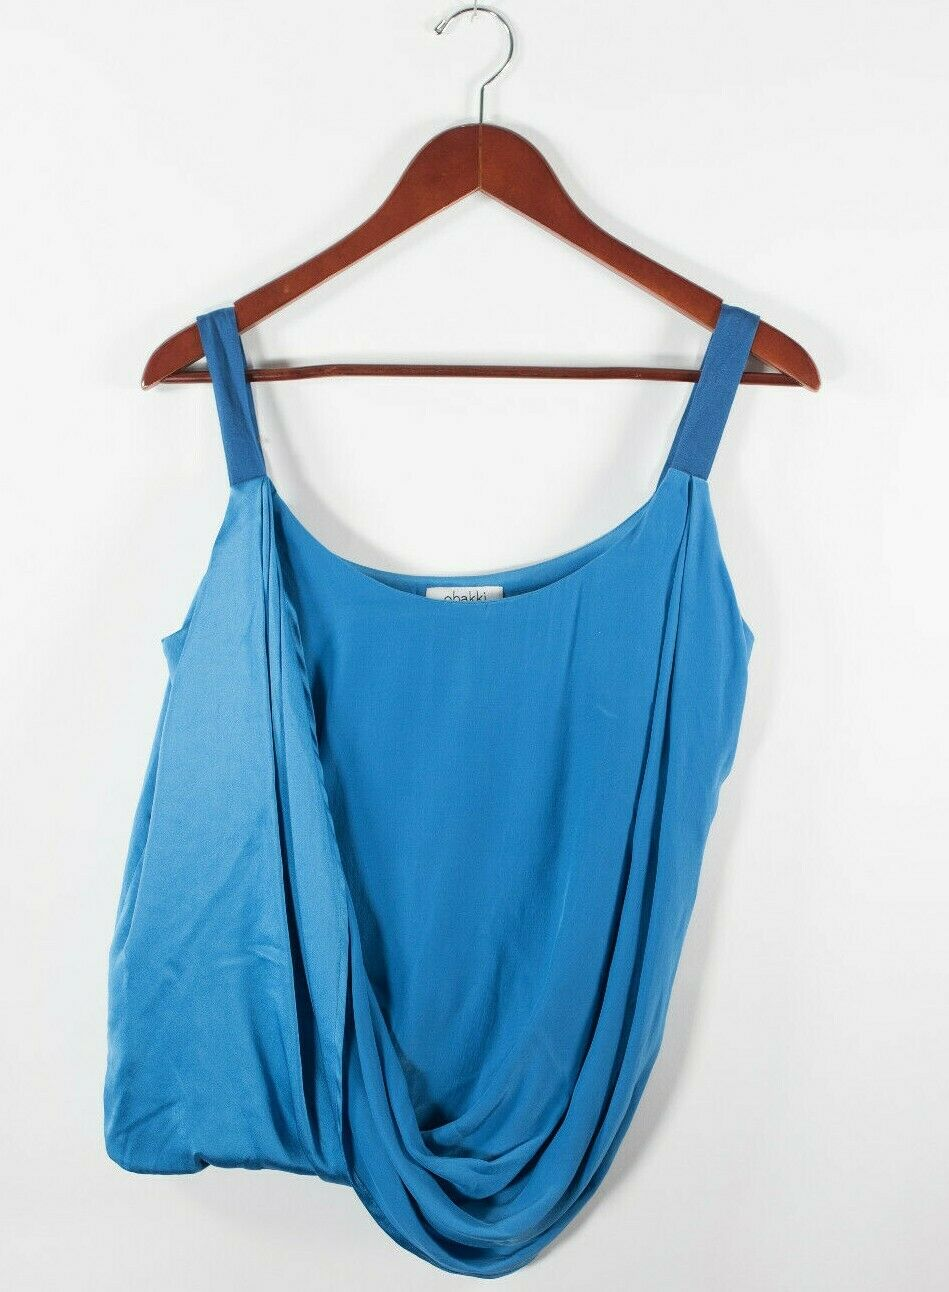 Obakki Womens Size 2 XS Blue Tank Top Silk Spaghetti Strap Made in Canada Blouse